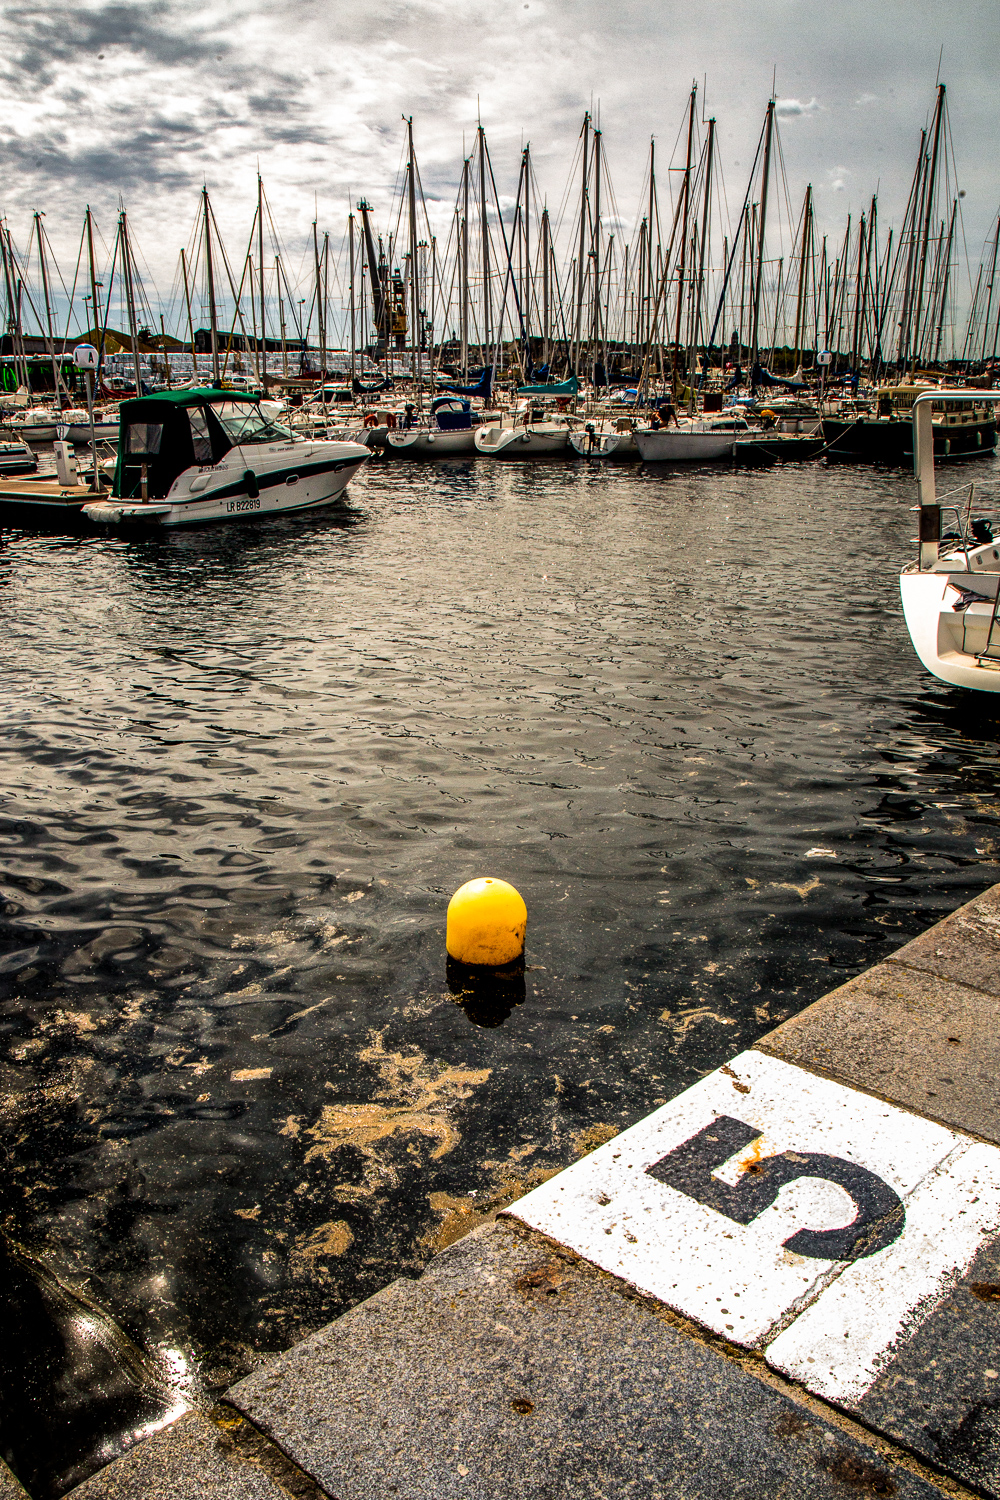 Sailboats-Buoy-Pier-Saint-Malo.jpg